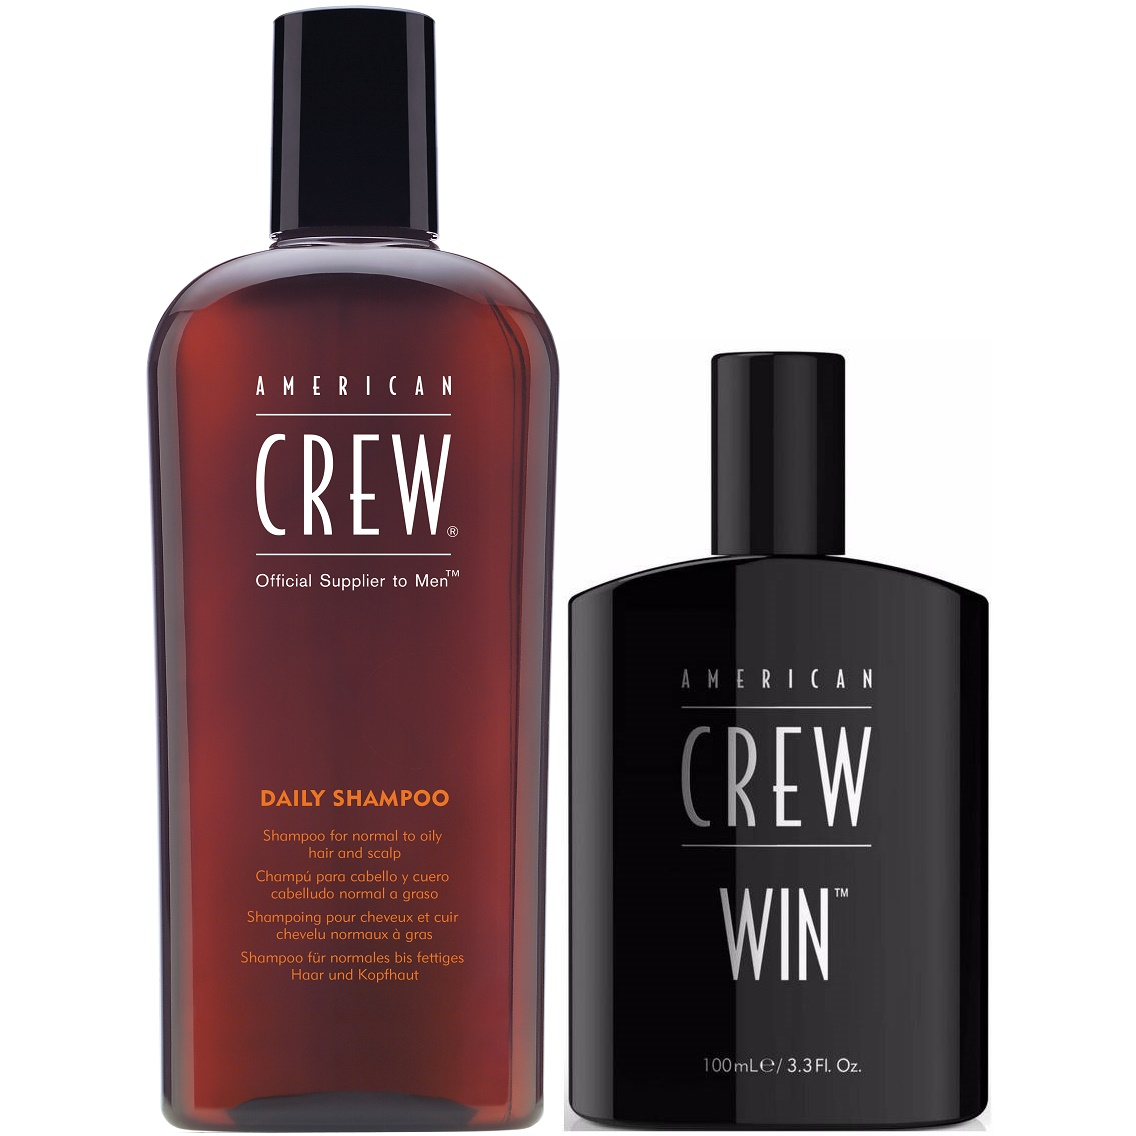 17_American-Crew-Daily-Shampoo-250ml_Win_Fragance_100ml.jpg